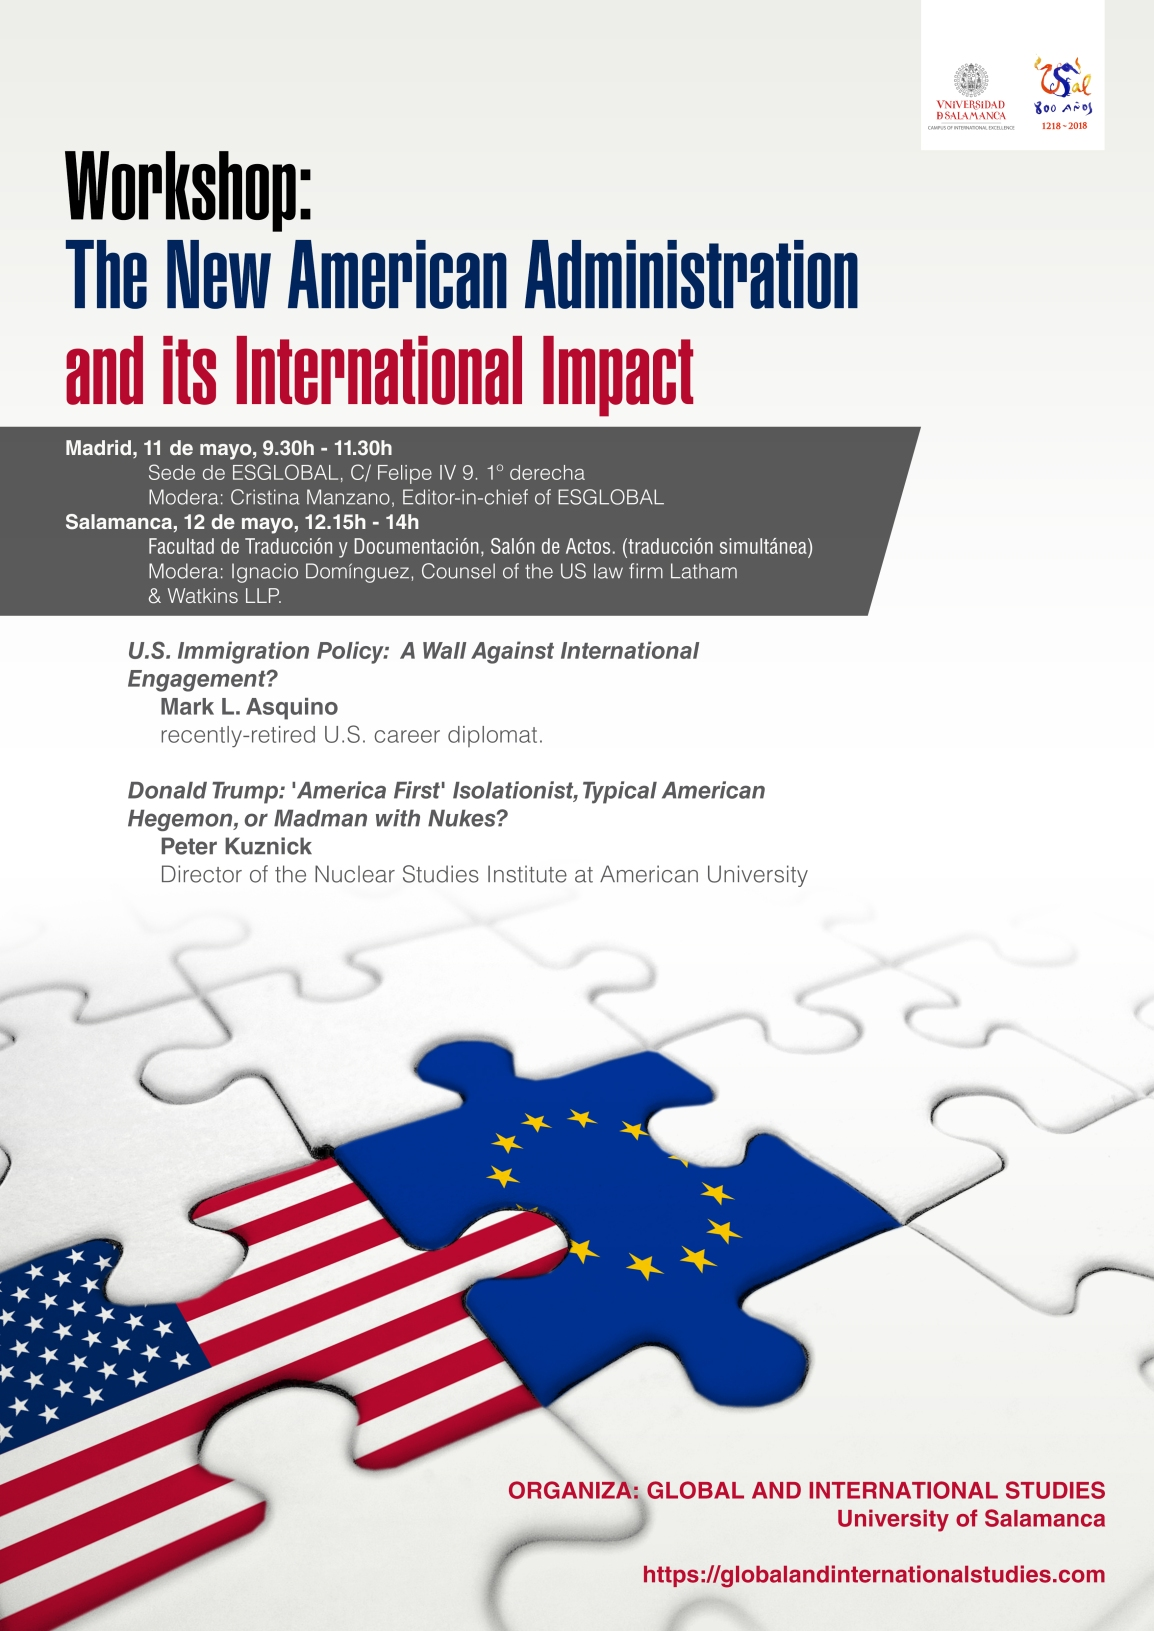 """We are delighted to announce the opening event of our master program with the workshop on """"The New American Administration and its International Impact"""" next May 11 and 12 in Madrid andSalamanca."""